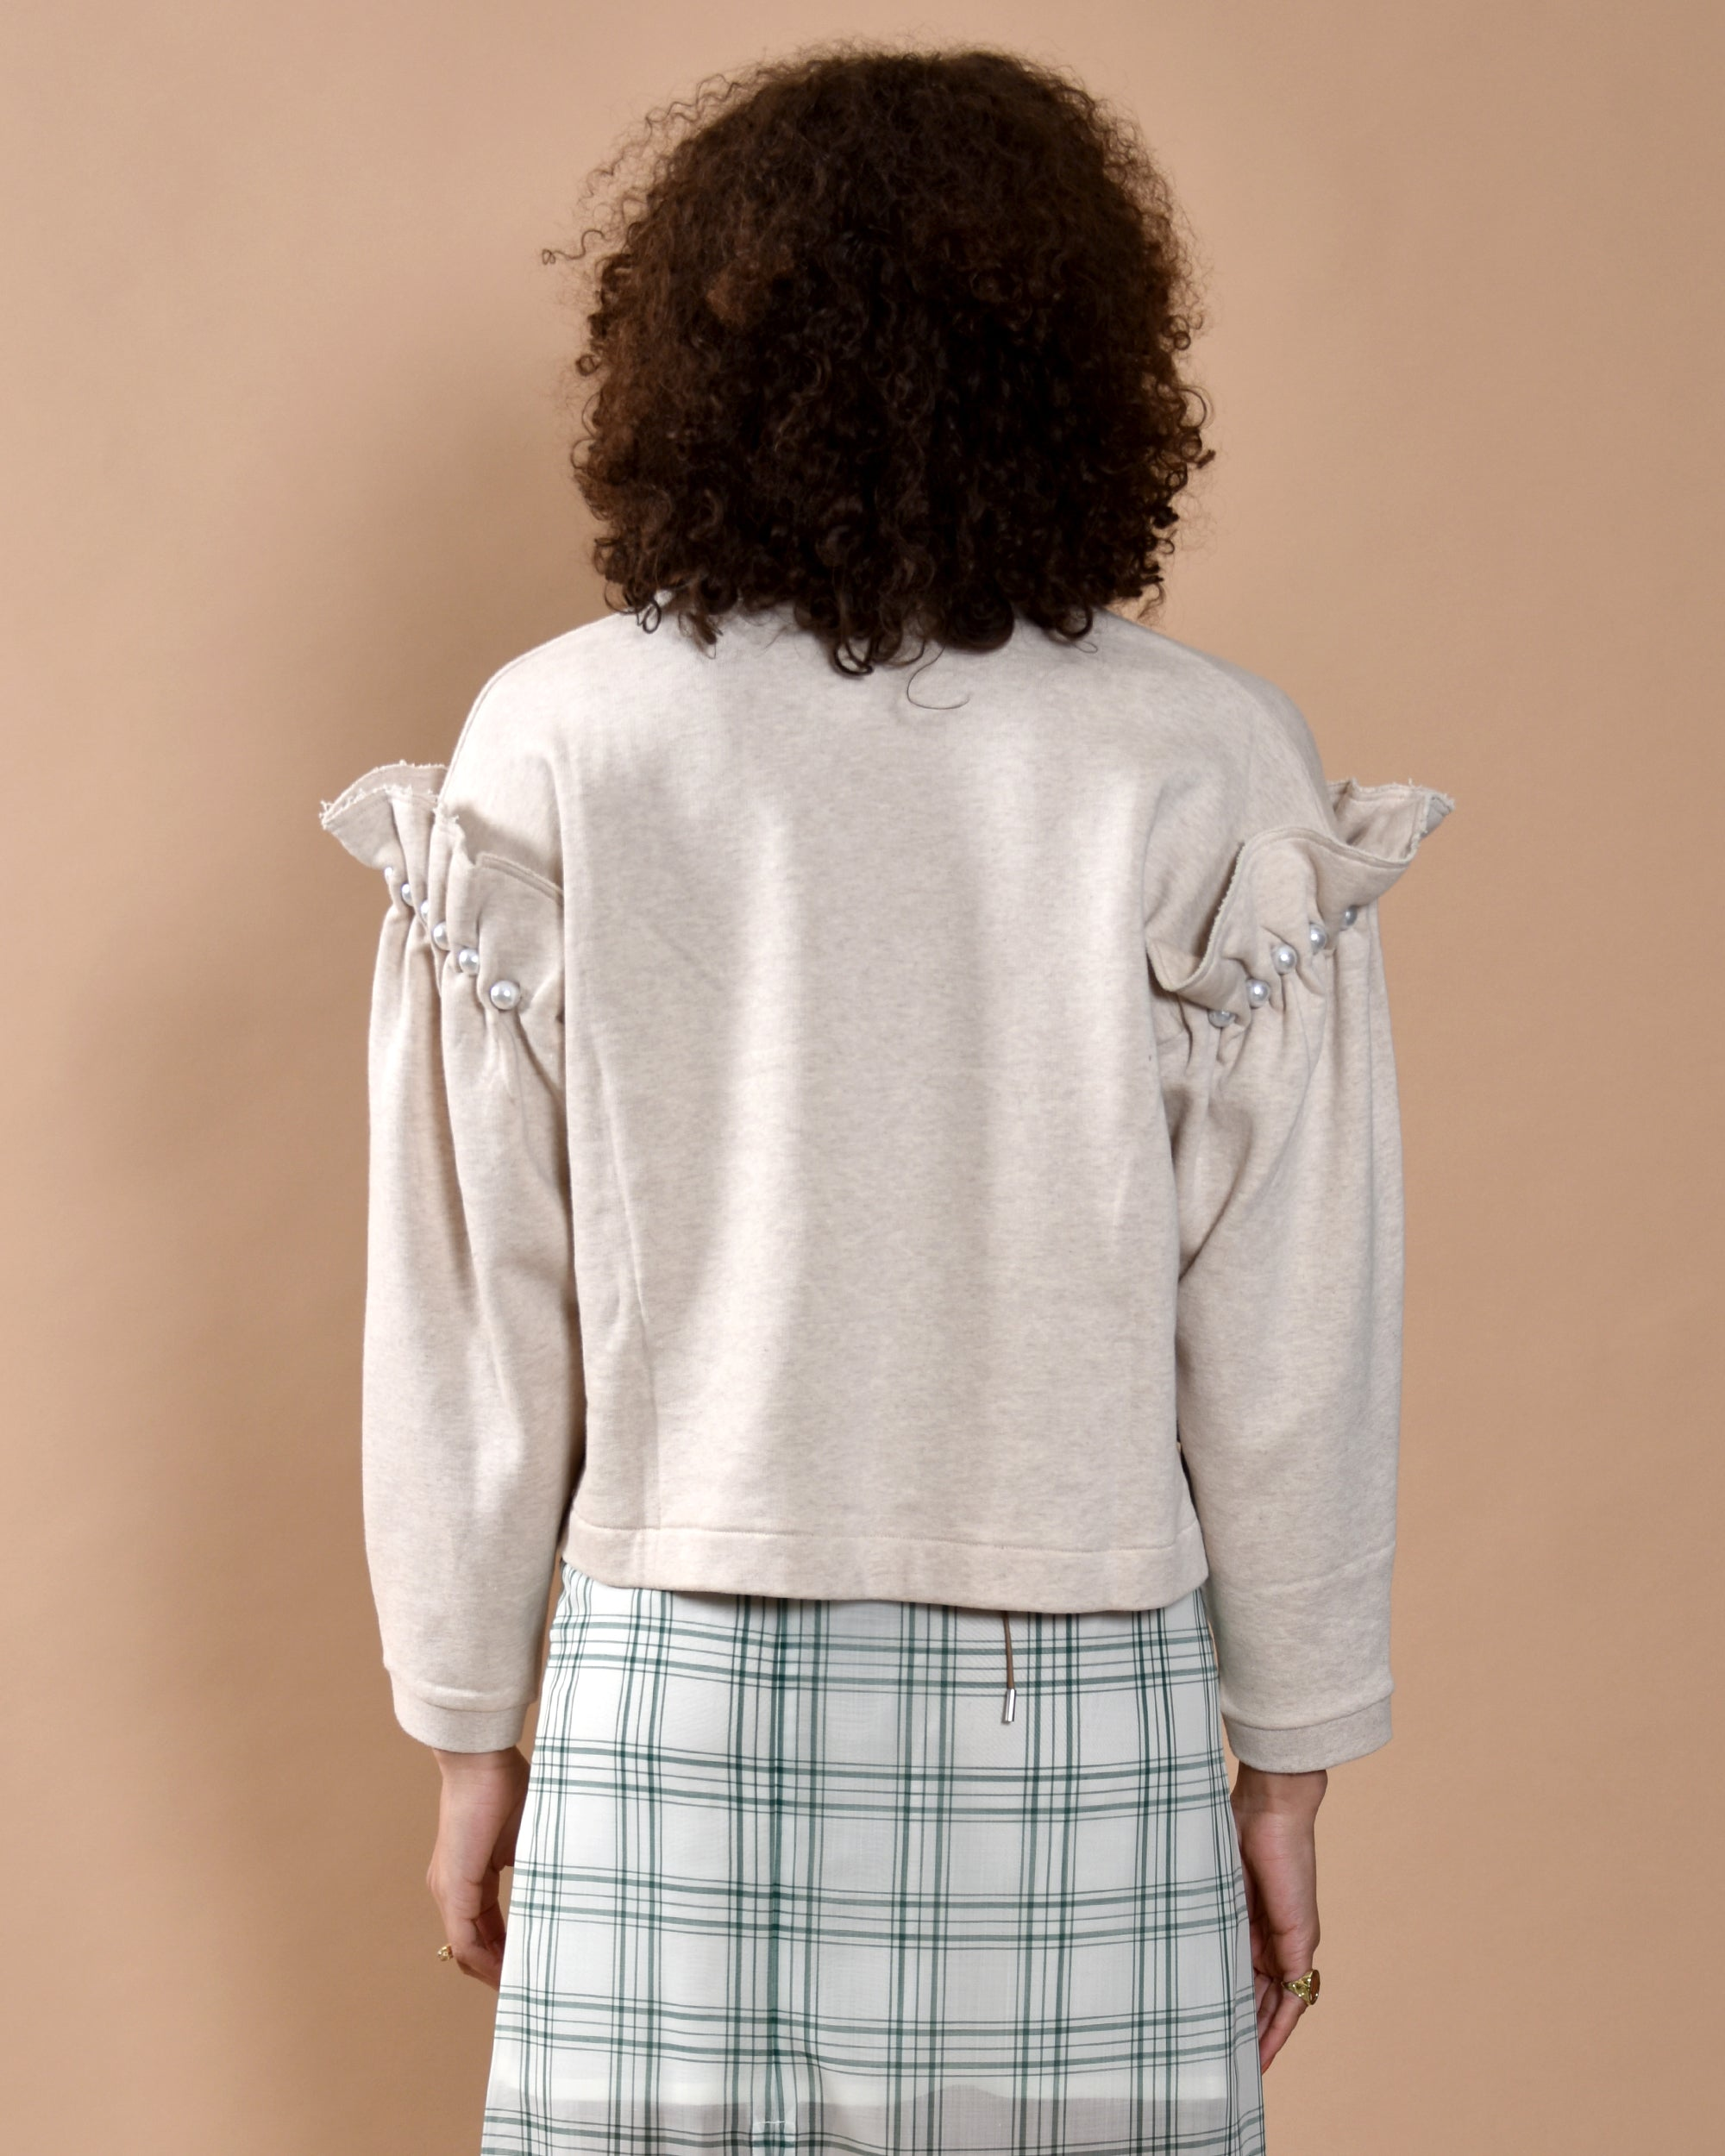 MOTHER OF PEARL Dani Jersey Sweatshirt / Oatmeal